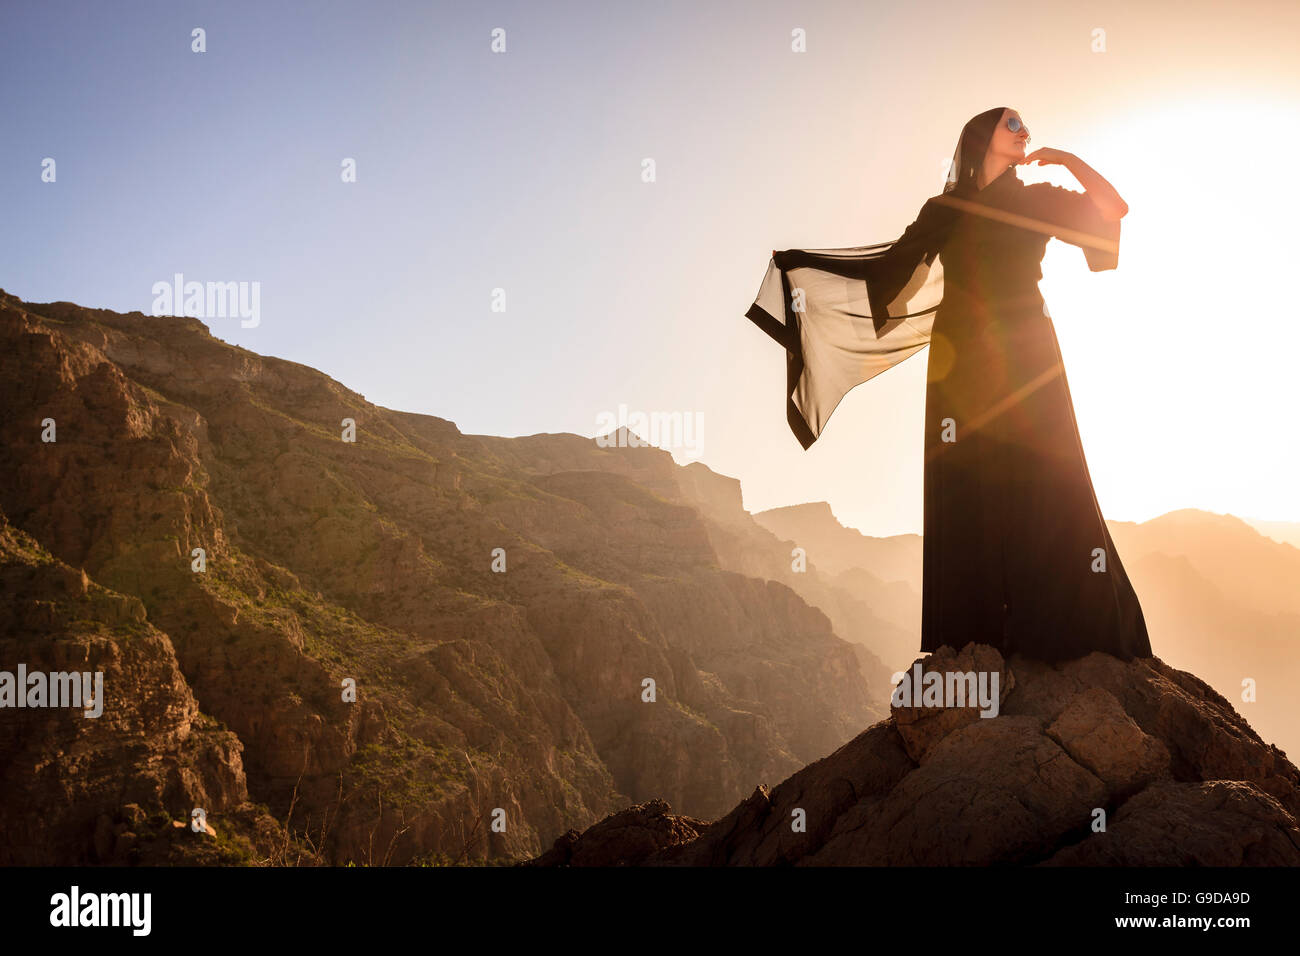 Lone woman in abaya in Al Hajar Mountains of Oman at sunset - Stock Image